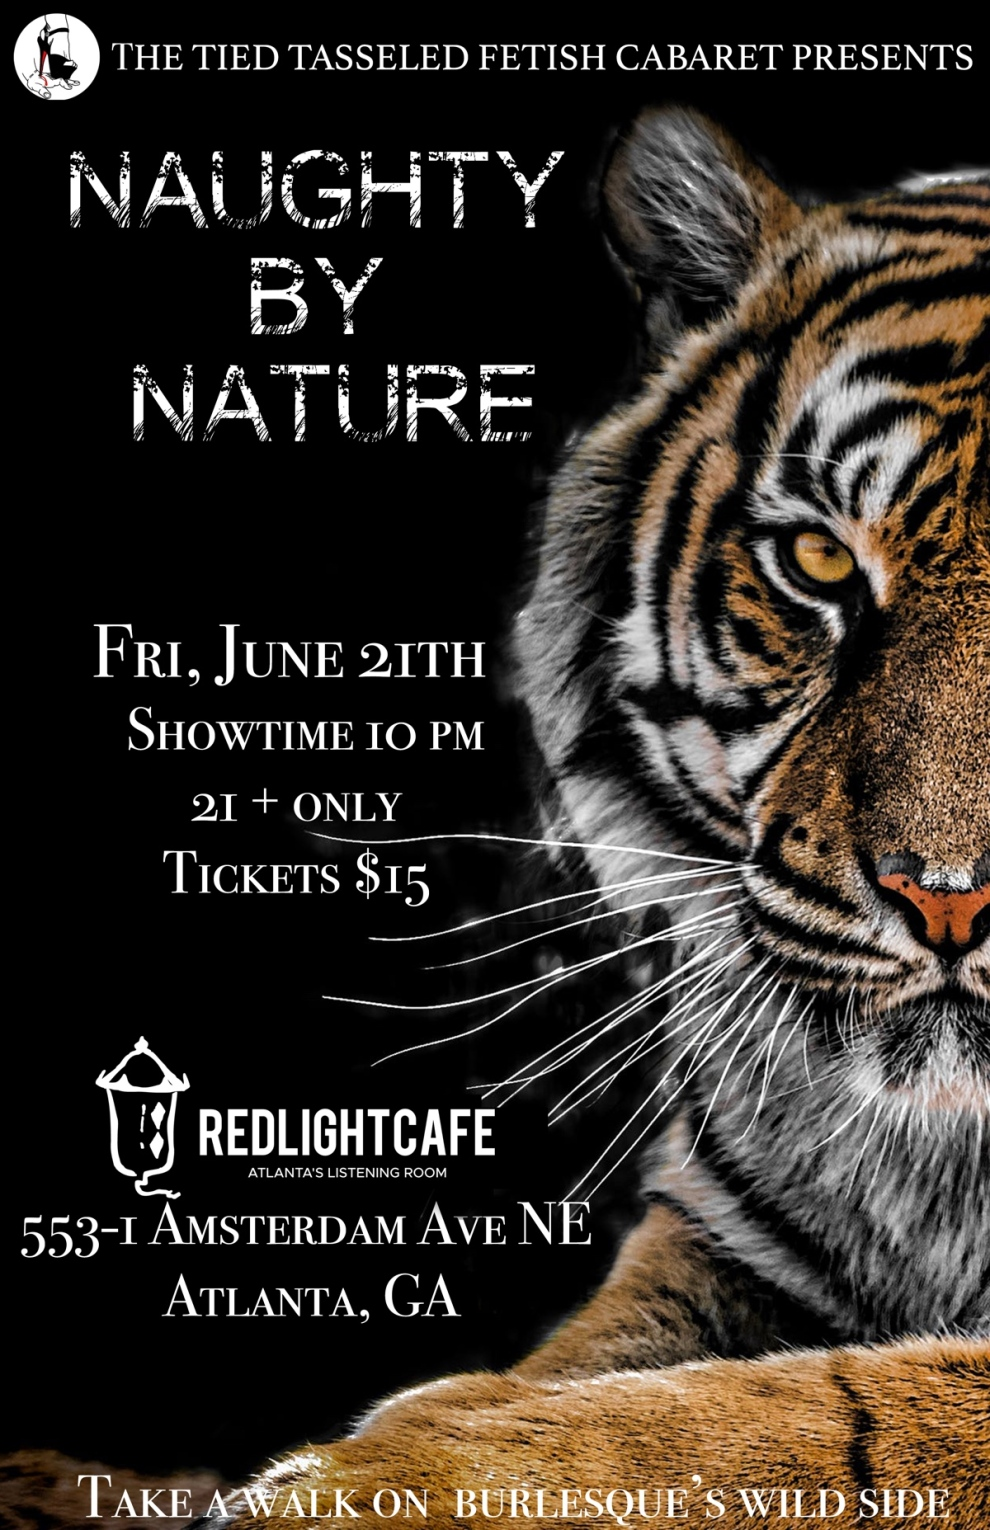 Naughty By Nature A Wild Burlesque Revue Presented By Tied And Tasseled Fetish Cabaret At Red Light Cafe Atlanta Ga Jun 21 2019 Poster 1200